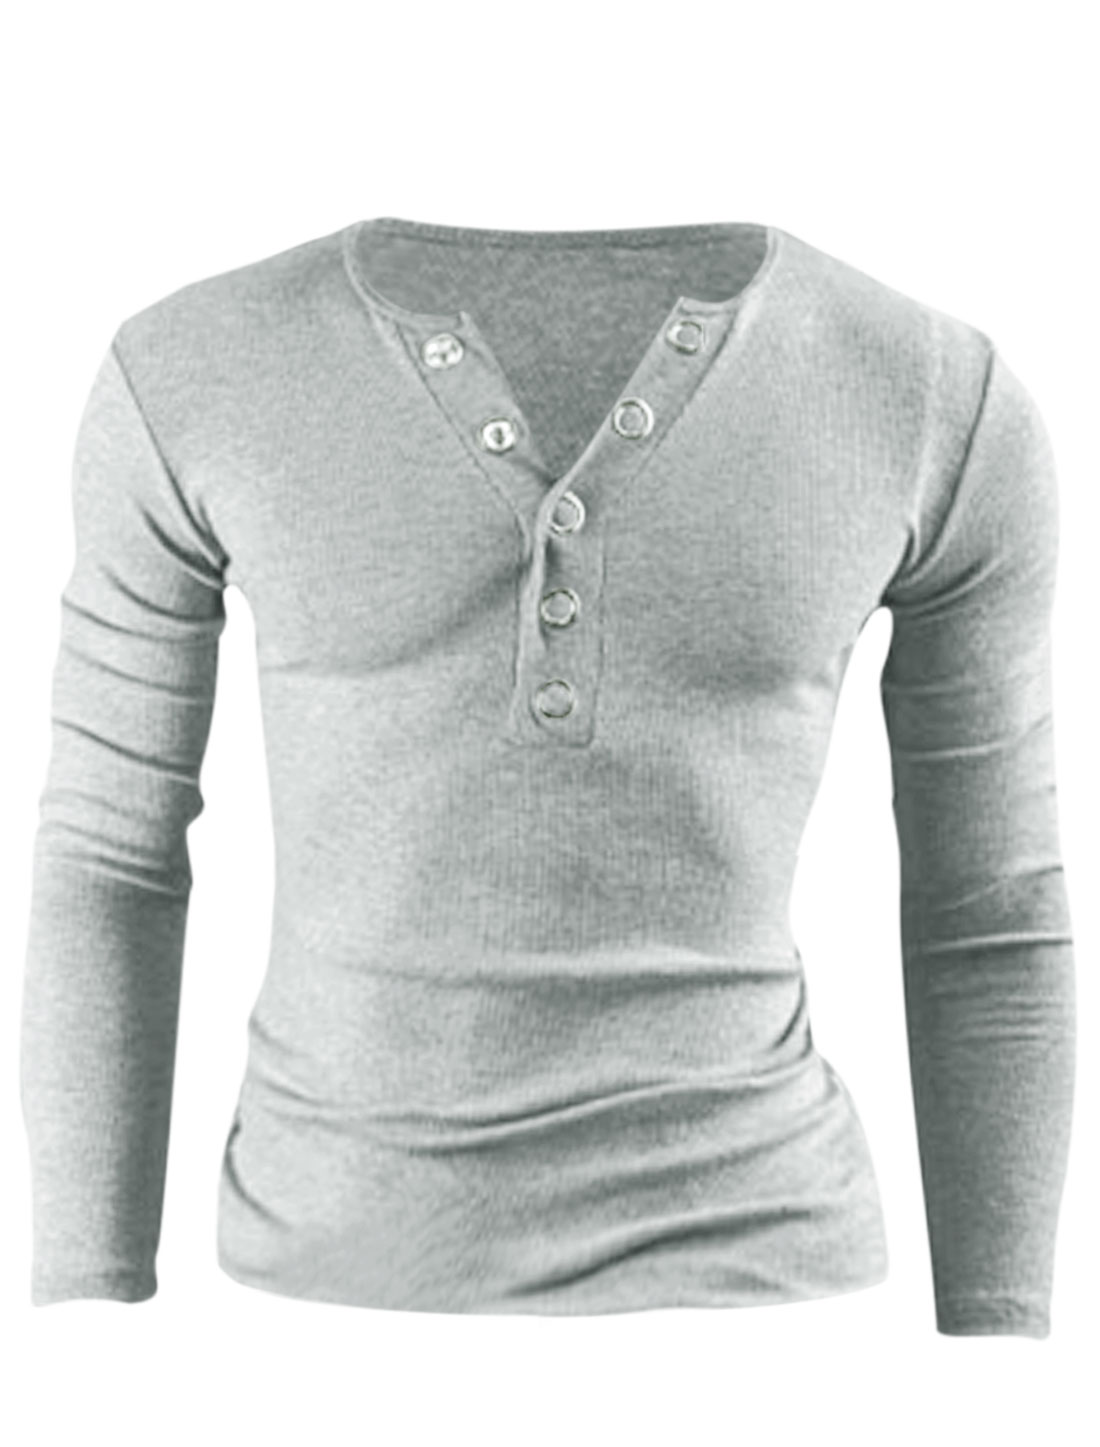 Men Stylish Cozy Fit Henley Shirt Light Gray M